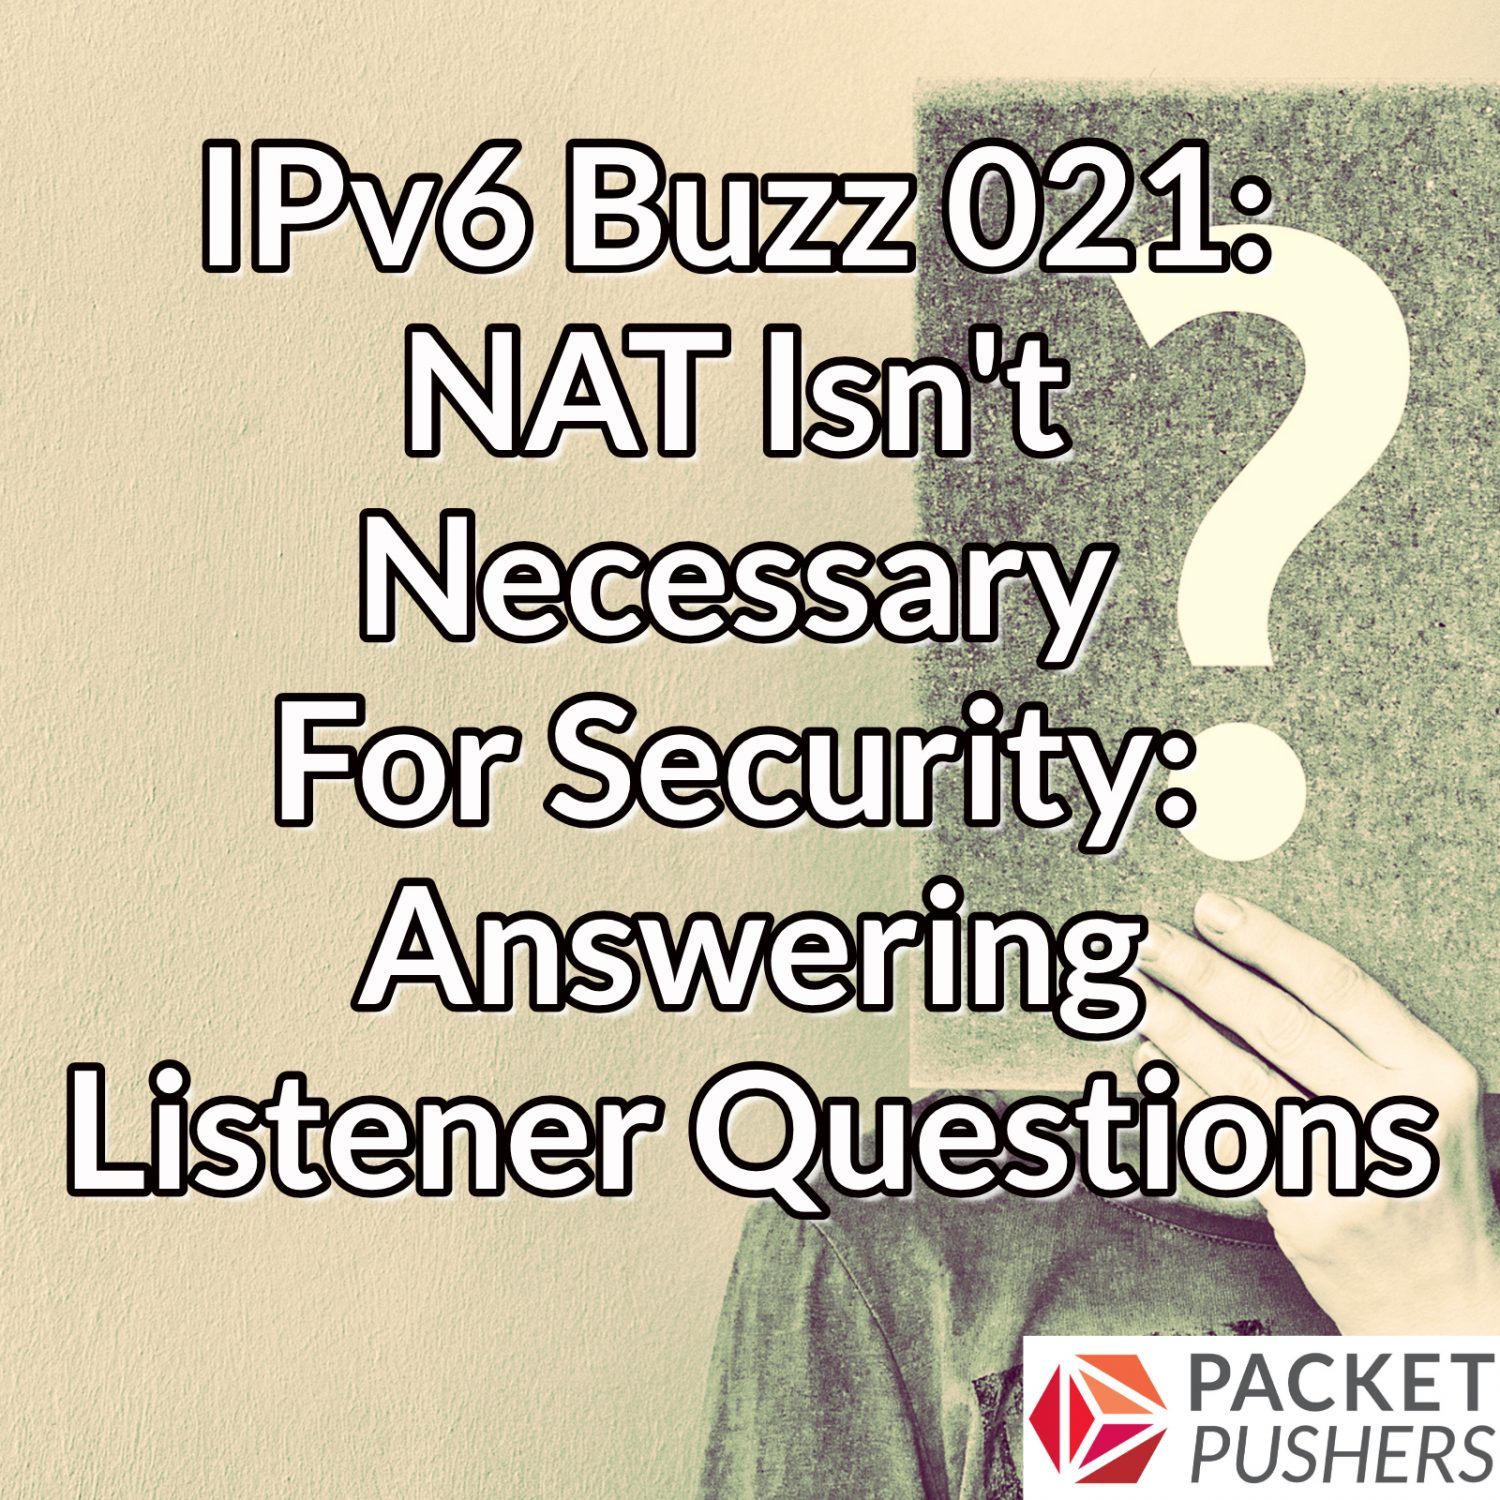 NAT Isn't Necessary For Security: Answering Listener Questions